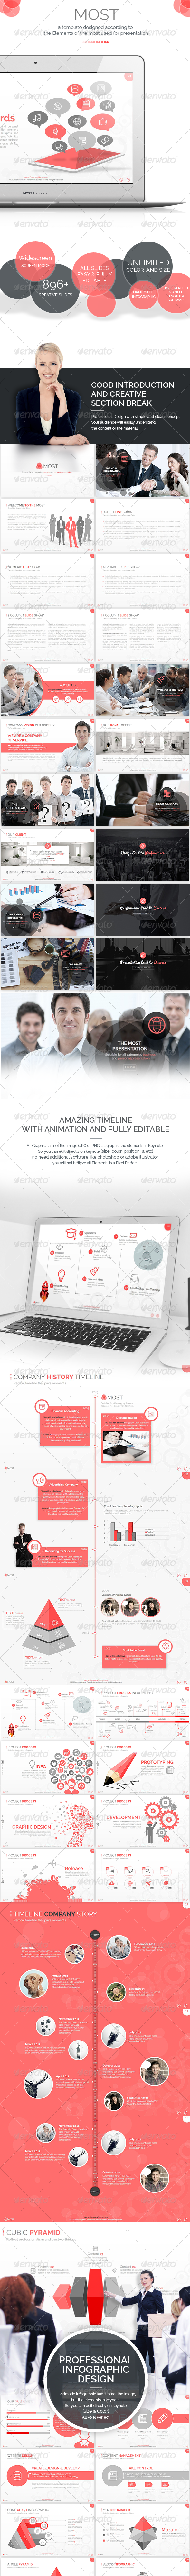 Most - The Most Keynote Version - Business Keynote Templates